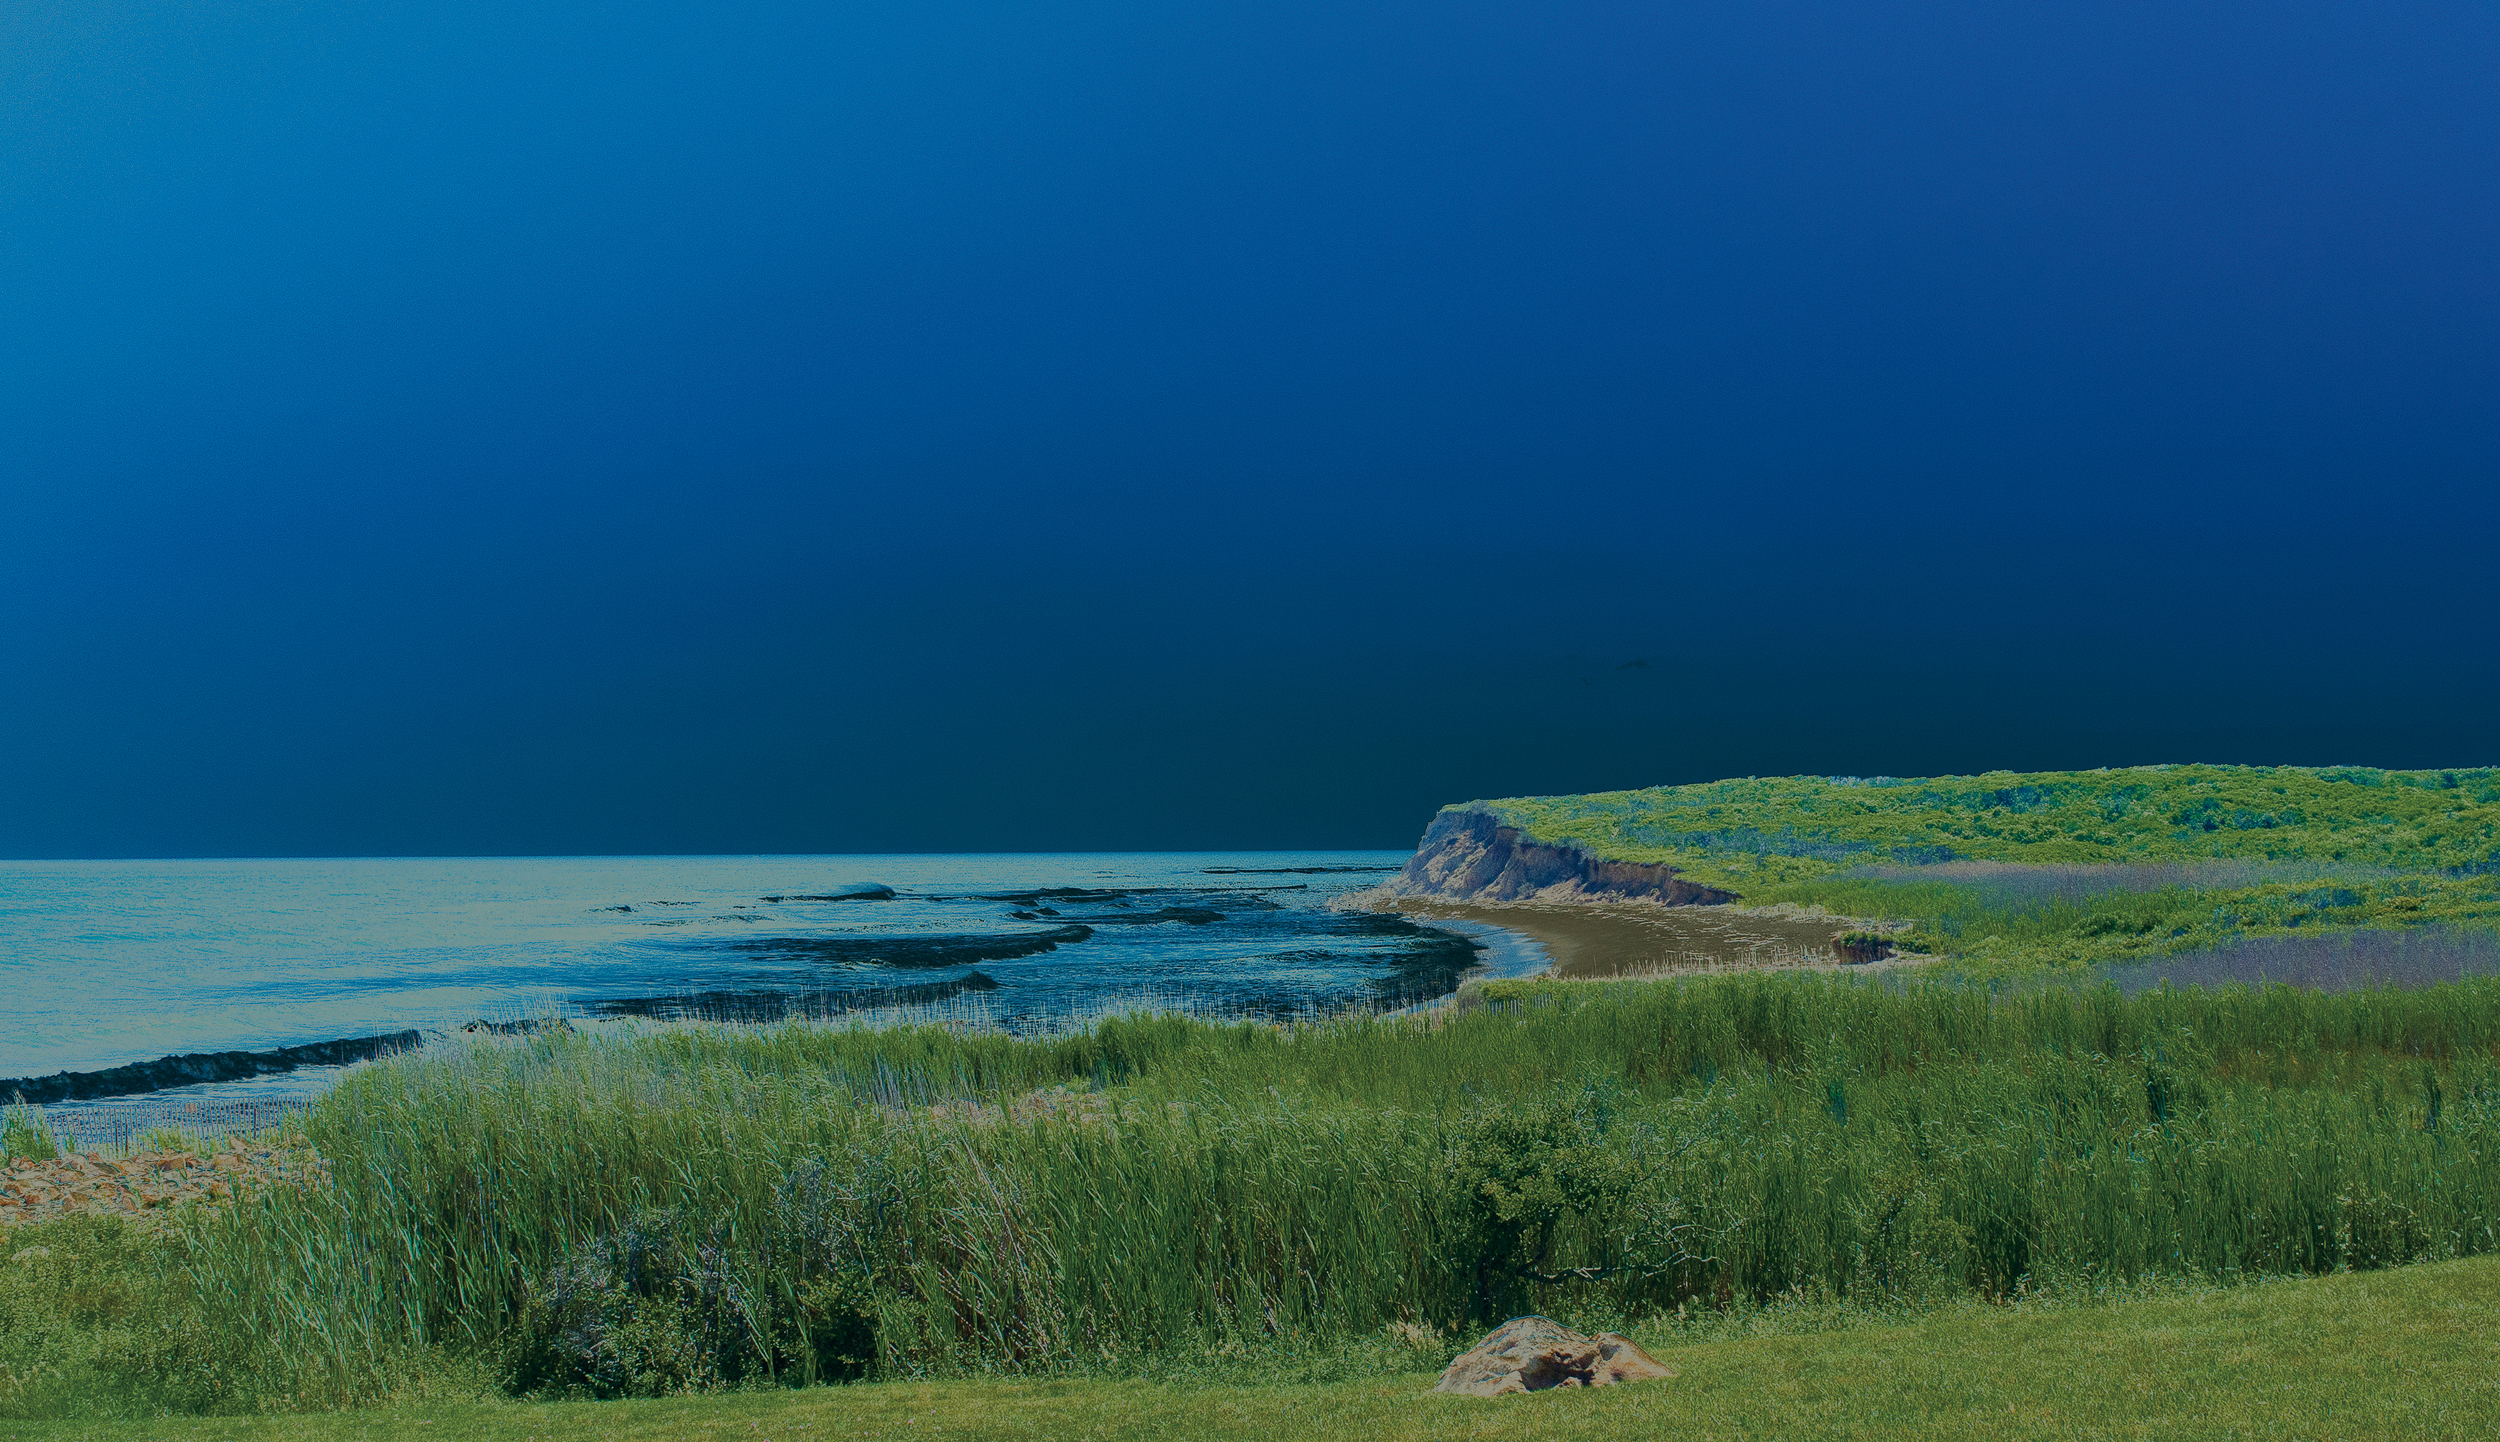 Montauk Warhol Cliff, 2018, photo on aluminum, 70.9 x 20.3 in, edition of 5 (3 available), $5,000